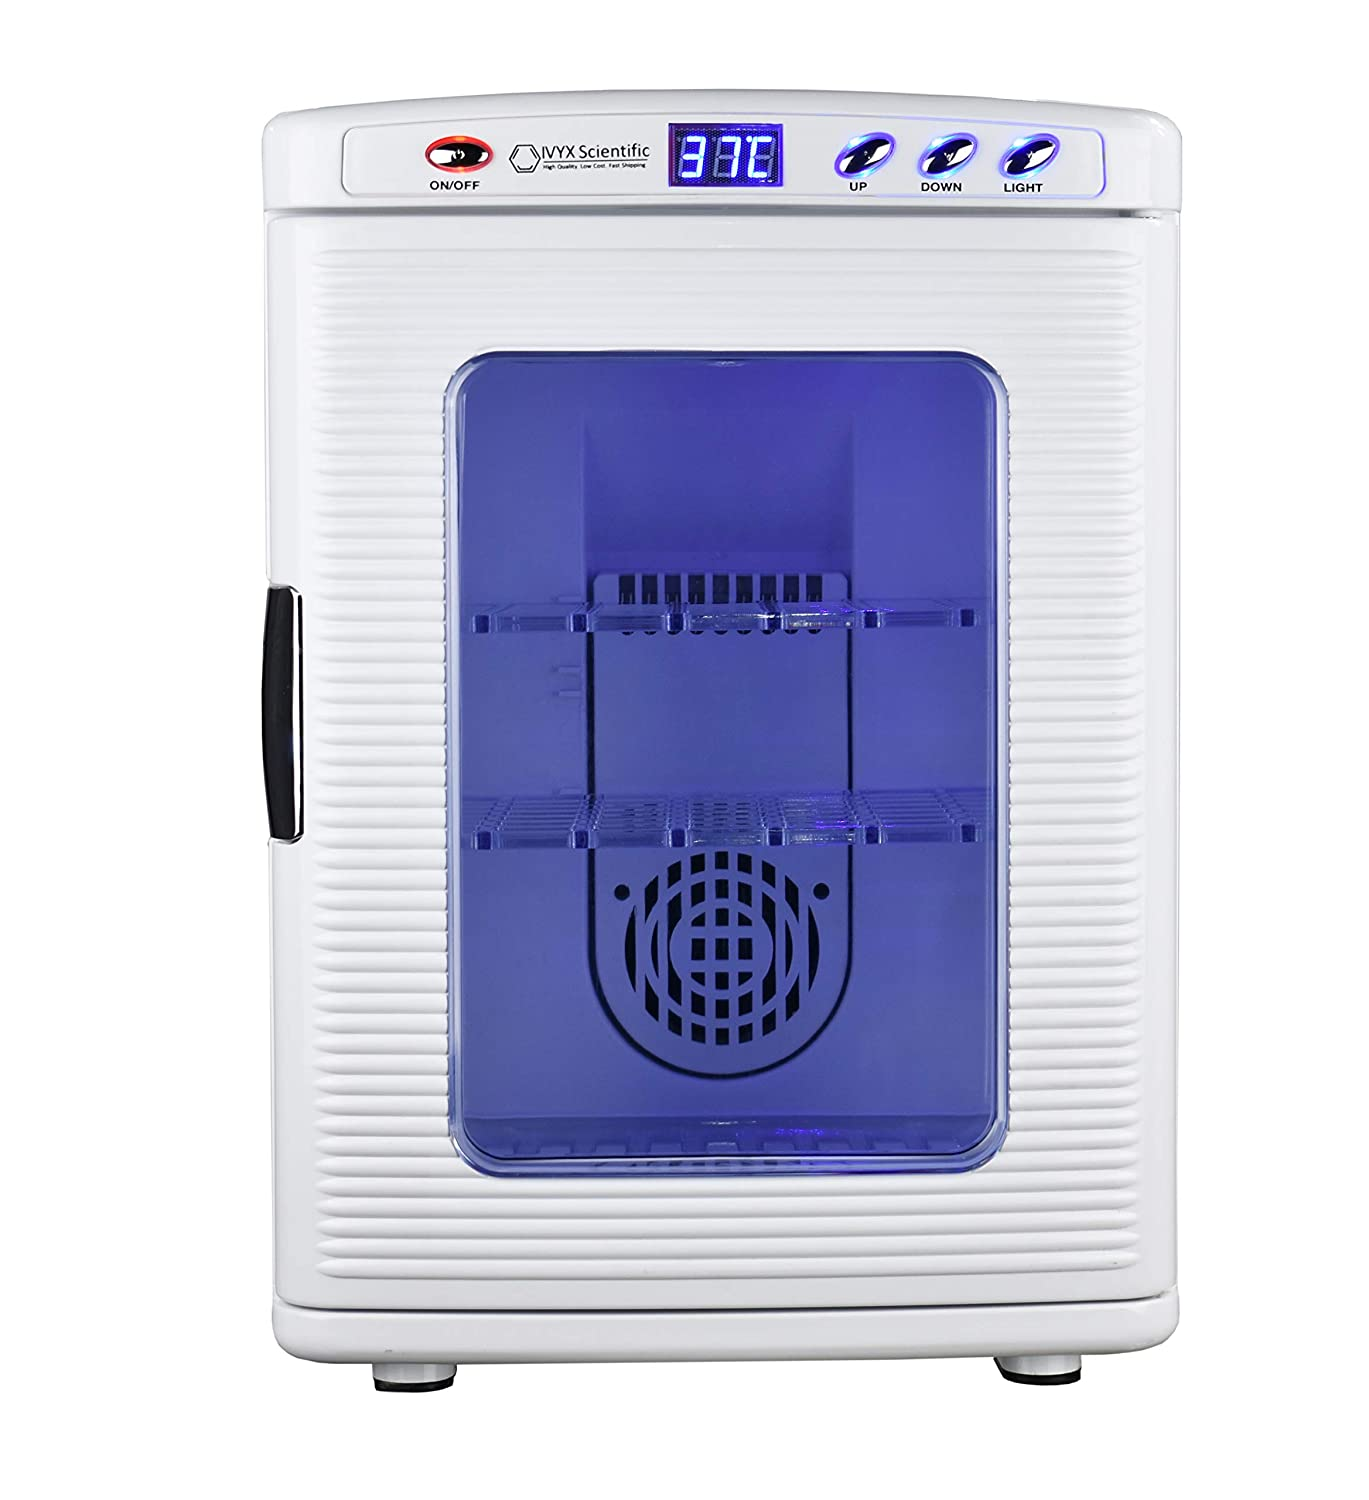 B07CDDFRK9 Lab Incubator, Cooling and Heating 2-60C, 12V/110V, 60W, 25L/0.88 cu. ft. Capacity 71dHM42VGEL._SL1500_